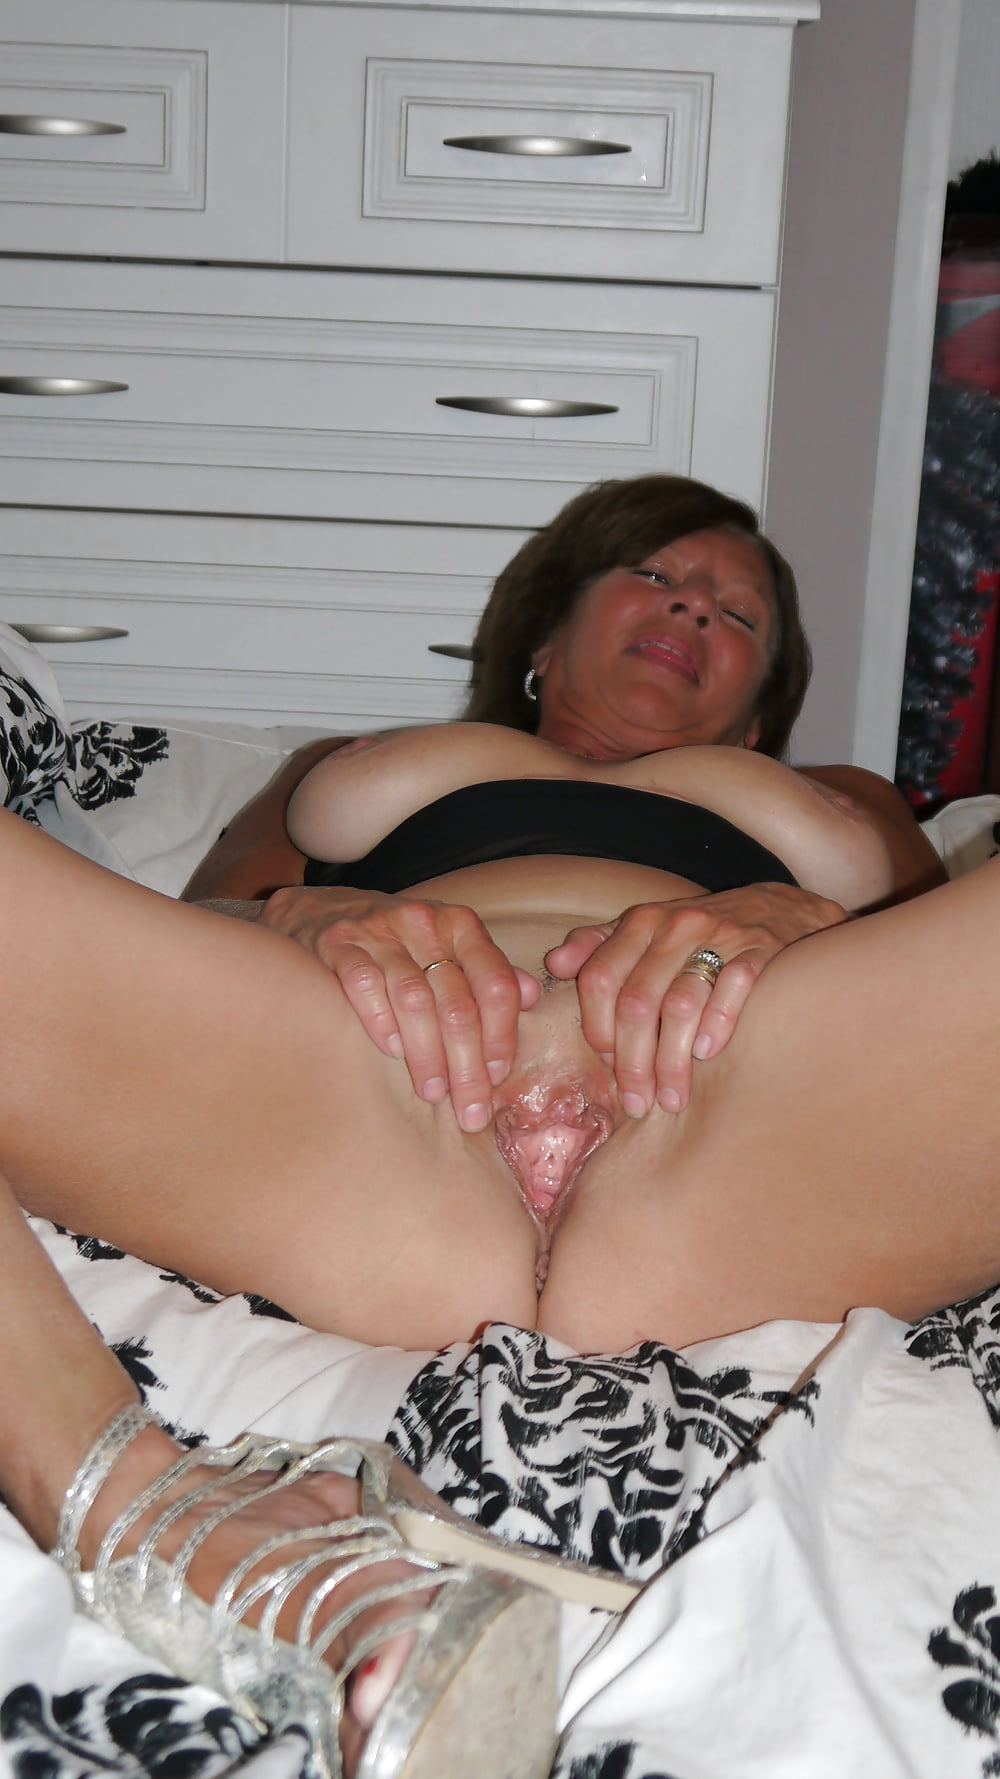 And look at her wet pussy